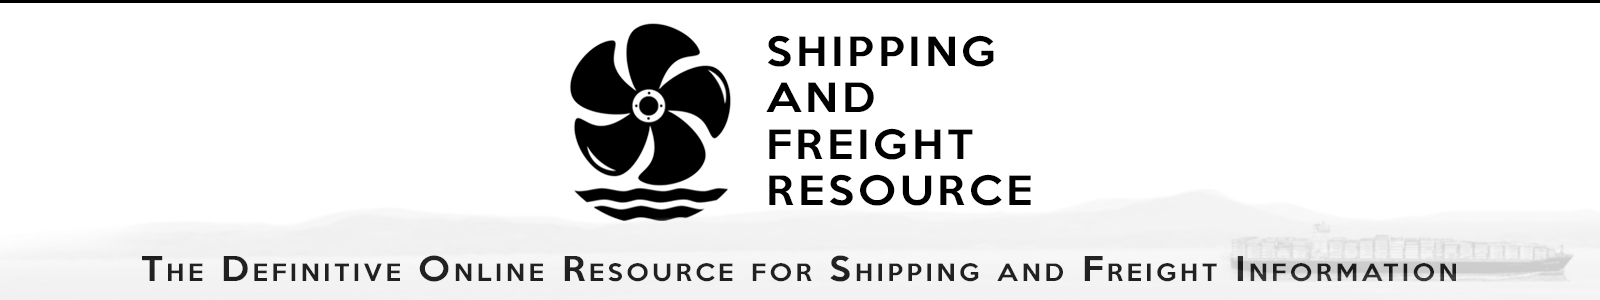 Shipping and Freight Resource